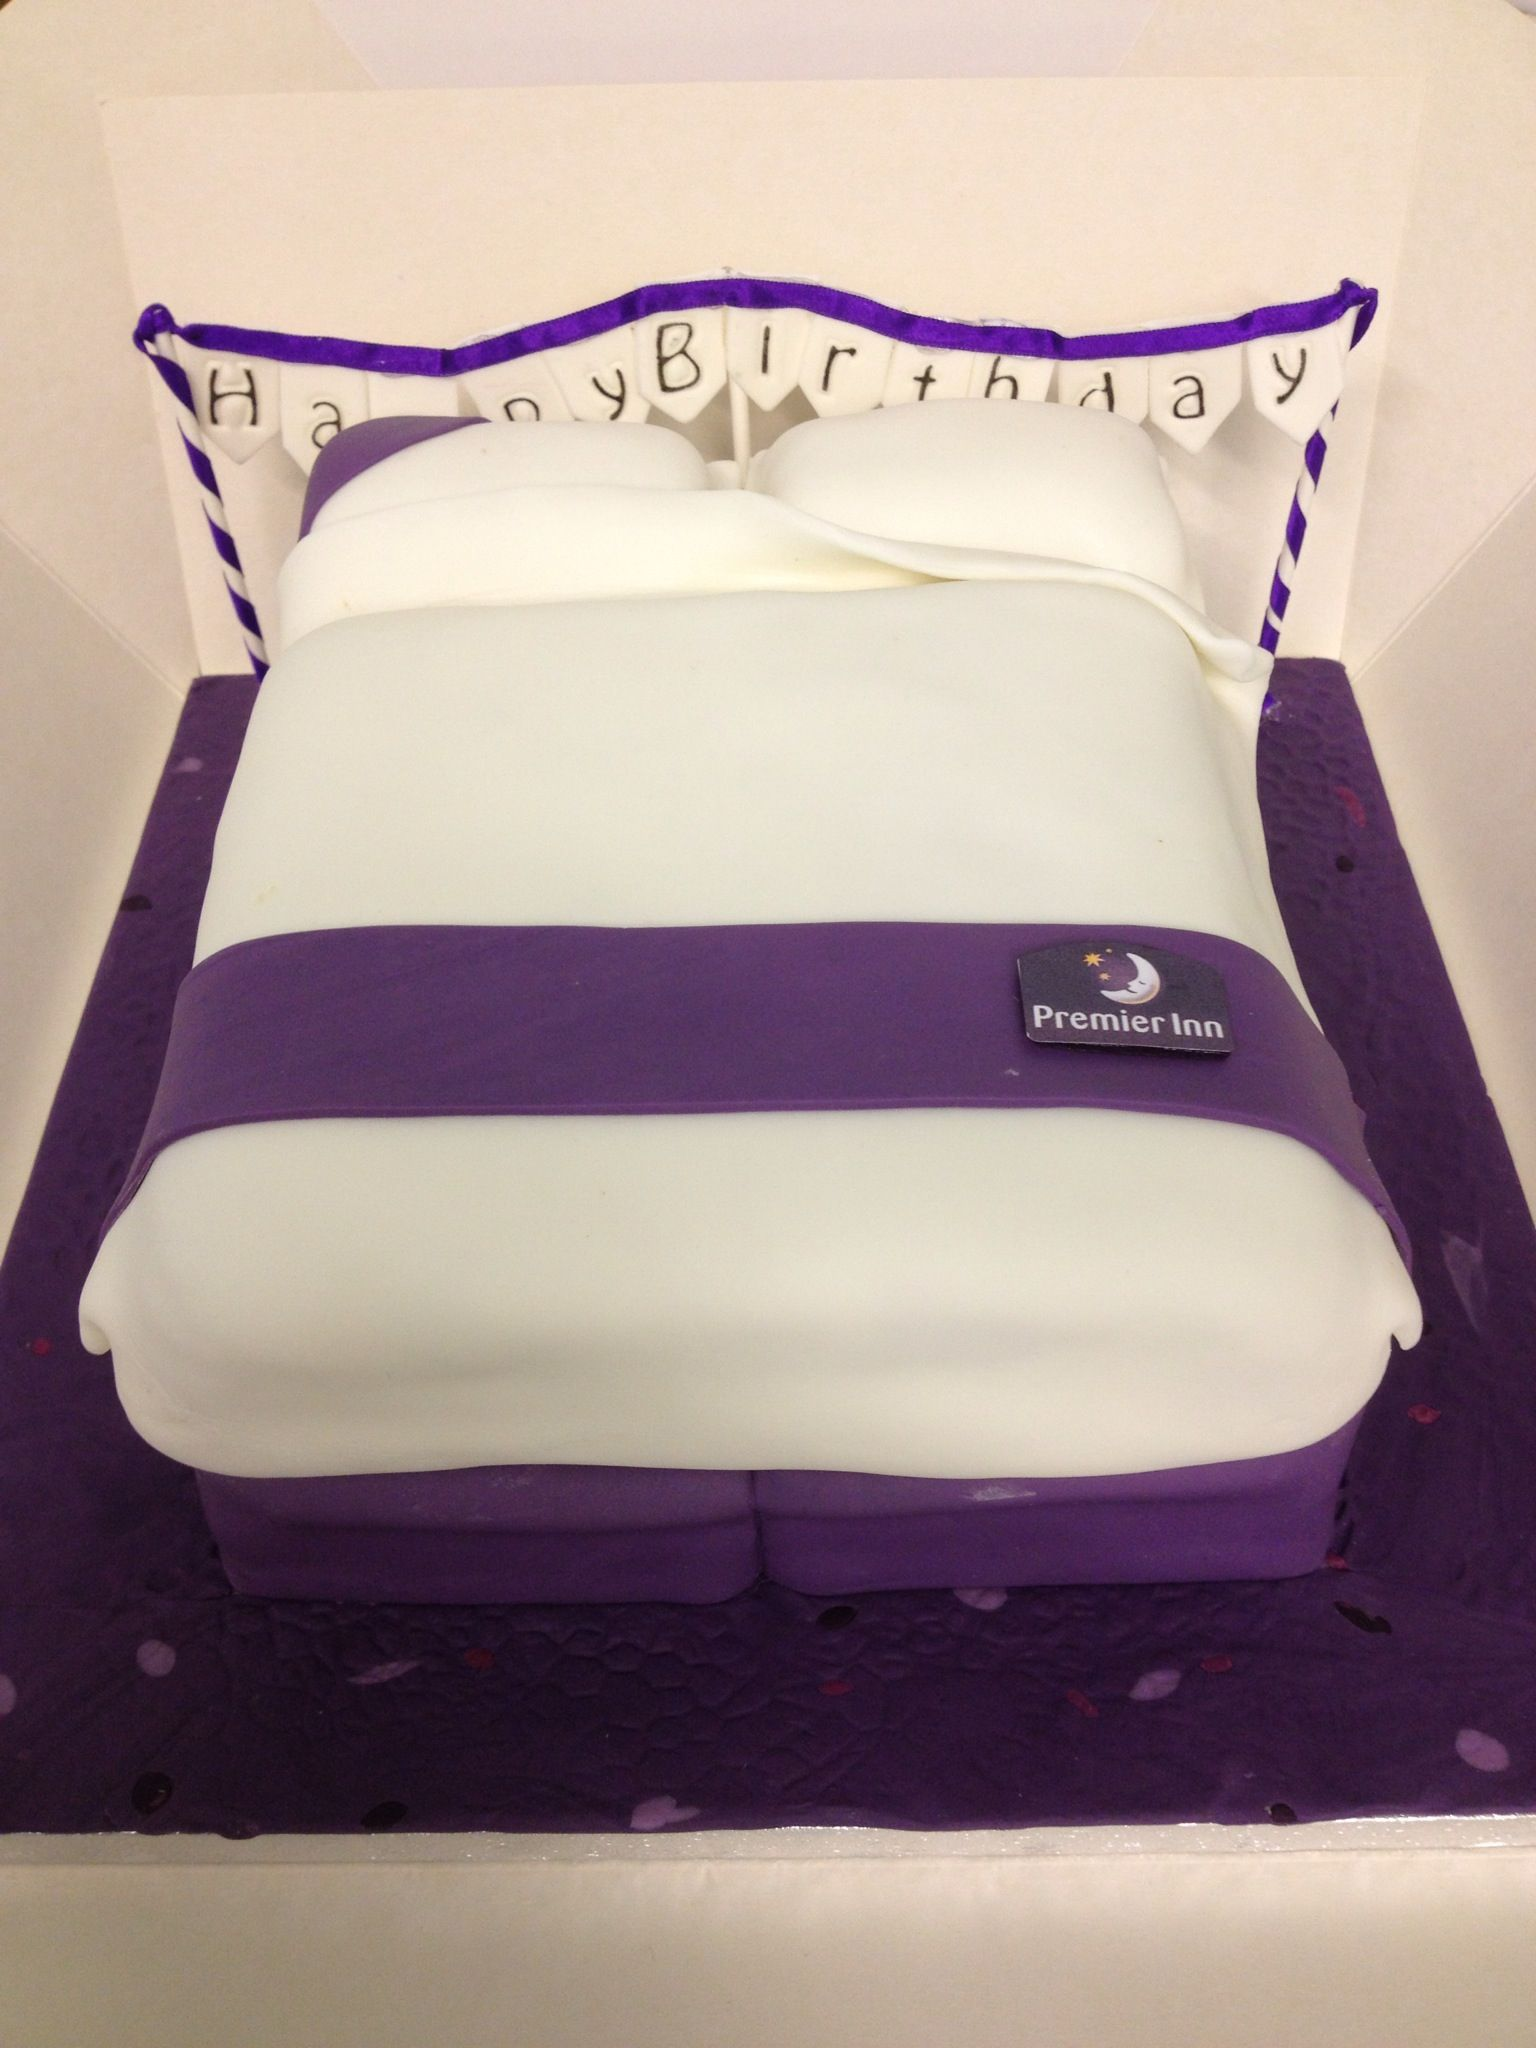 Premier Inn Hypnos Mattress Premier Inn Bed Cake For The Love Of Cake Pinterest